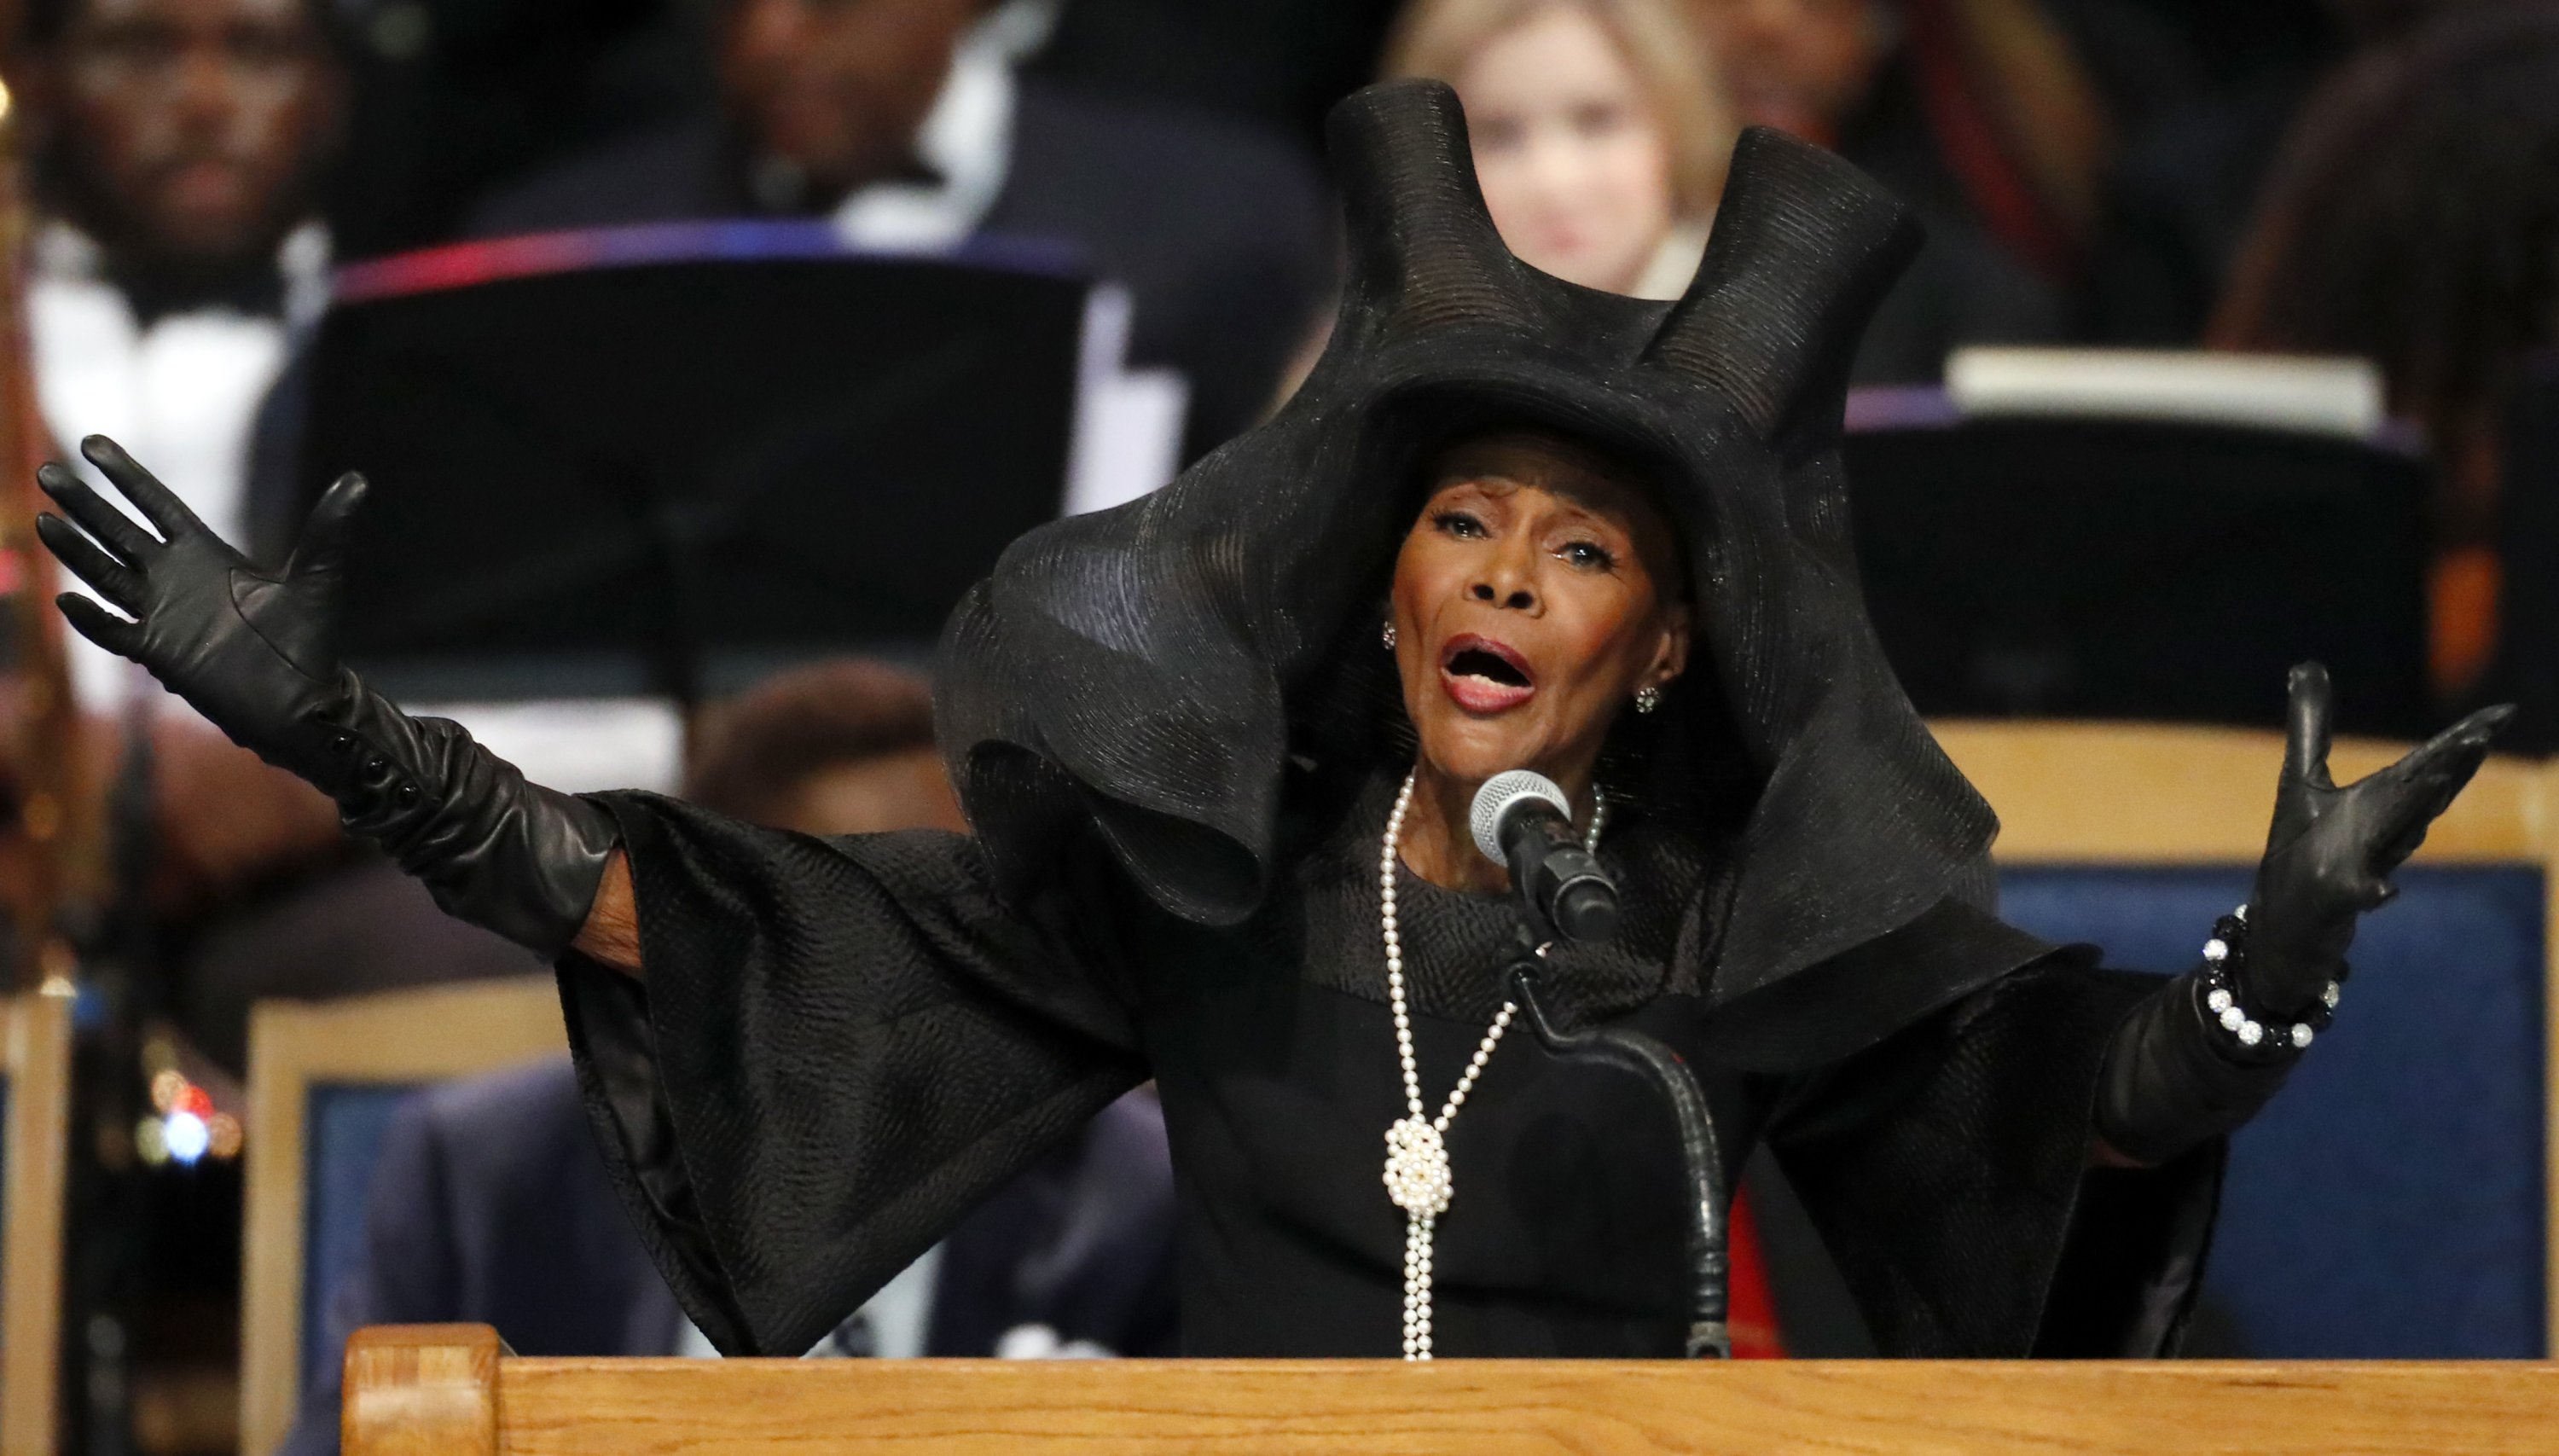 Cicely Tyson speaks during the funeral service for Aretha Franklin at Greater Grace Temple, in Detroit, Michigan, U.S., Aug. 31, 2018. (AP Photo)